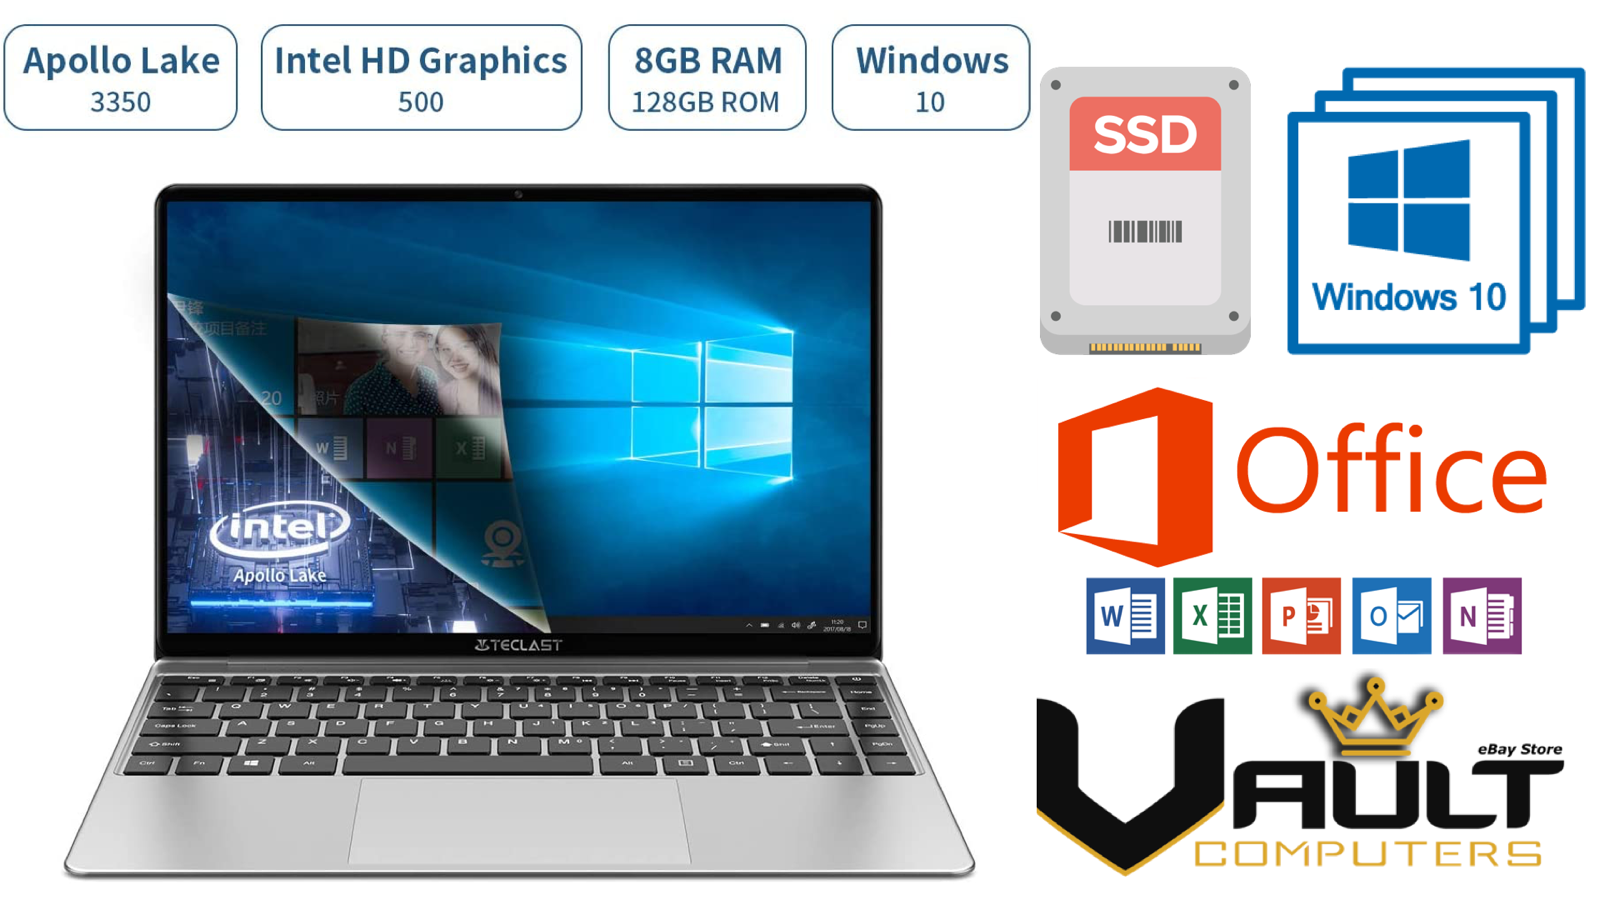 Laptop Windows - HD Laptop Dual Core, 8GB RAM, 128GB SSD, Windows 10 Home, Office 2019